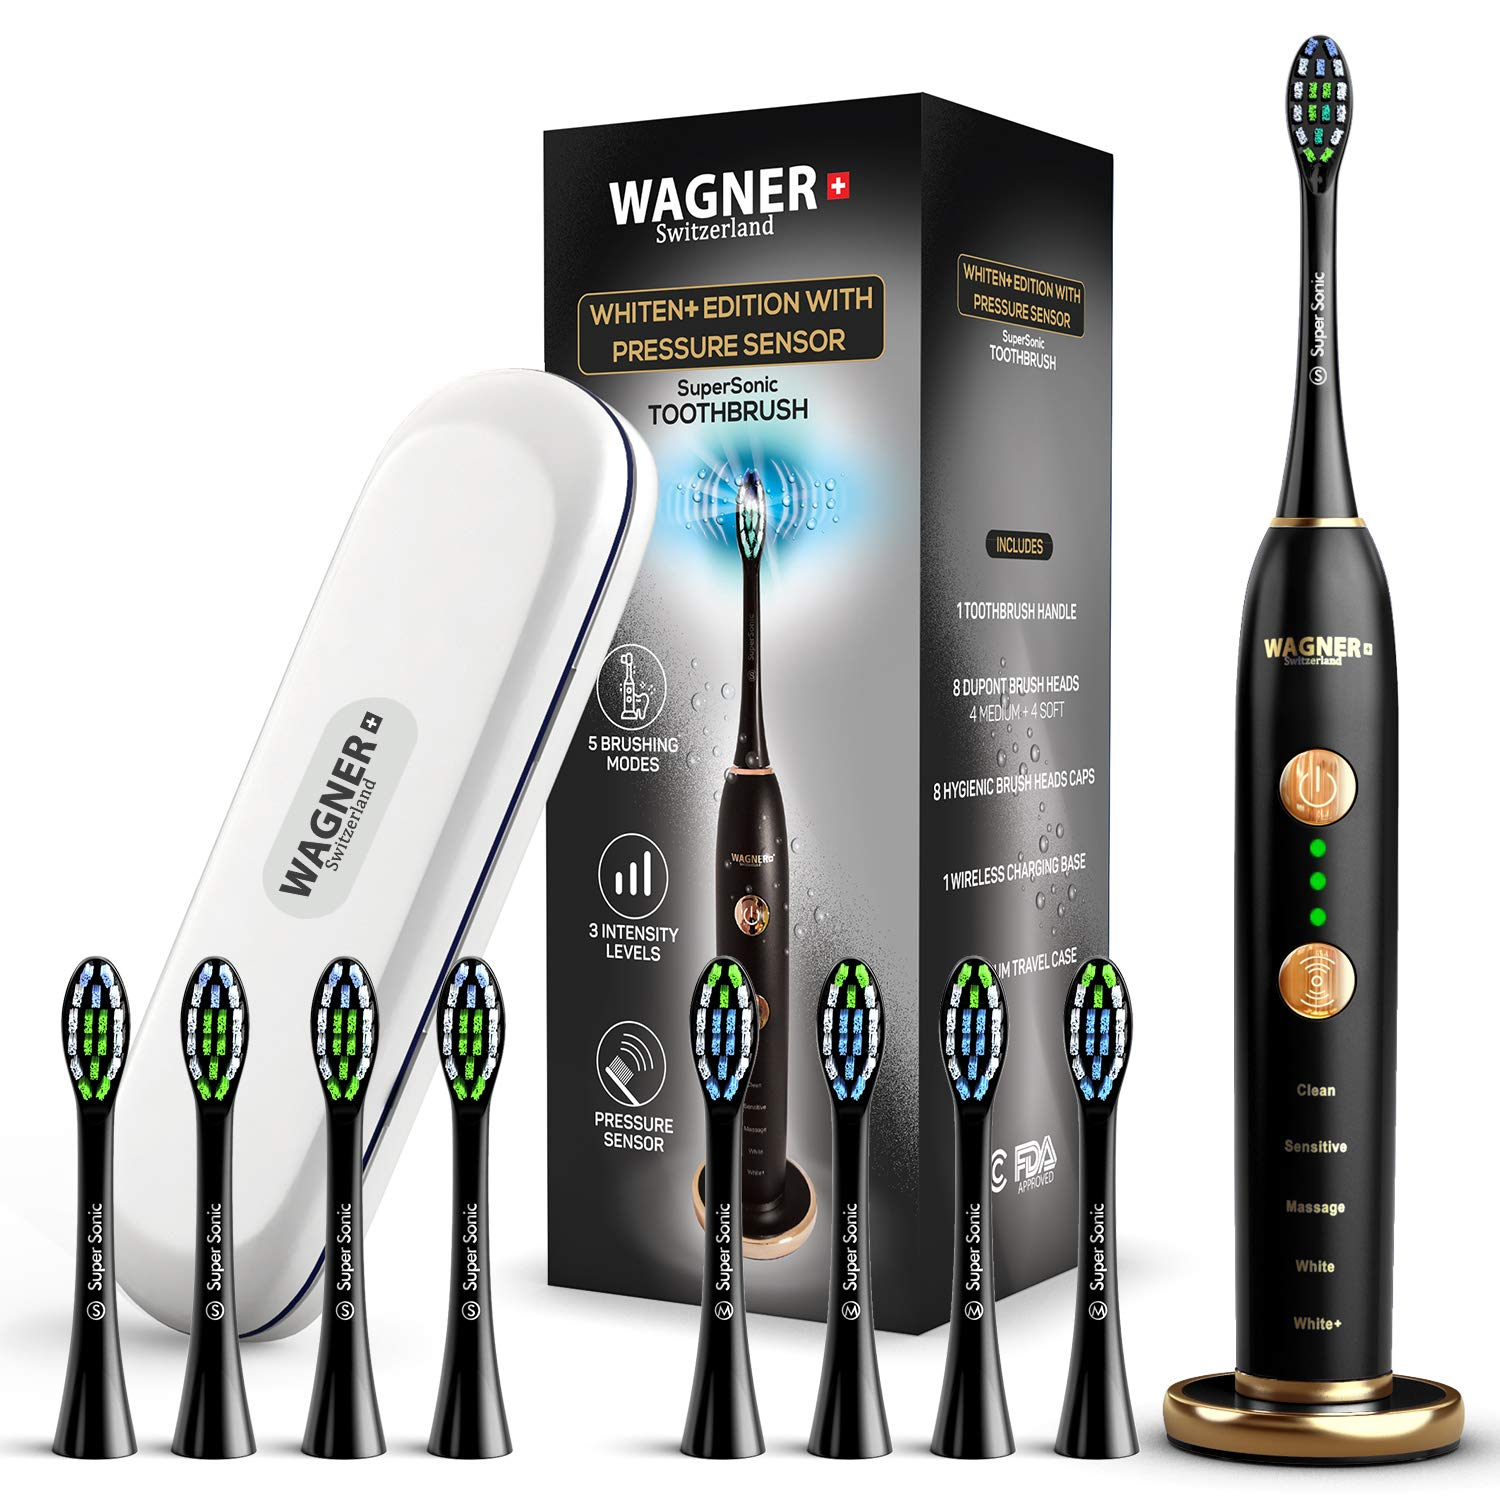 WAGNER Switzerland WHITEN EDITION. Smart electric toothbrush with PRESSURE SENSOR. 5 Brushing Modes and 3 INTENSITY Levels, 8 DuPont Bristles, Premium Travel Case, USB Wireless charging.